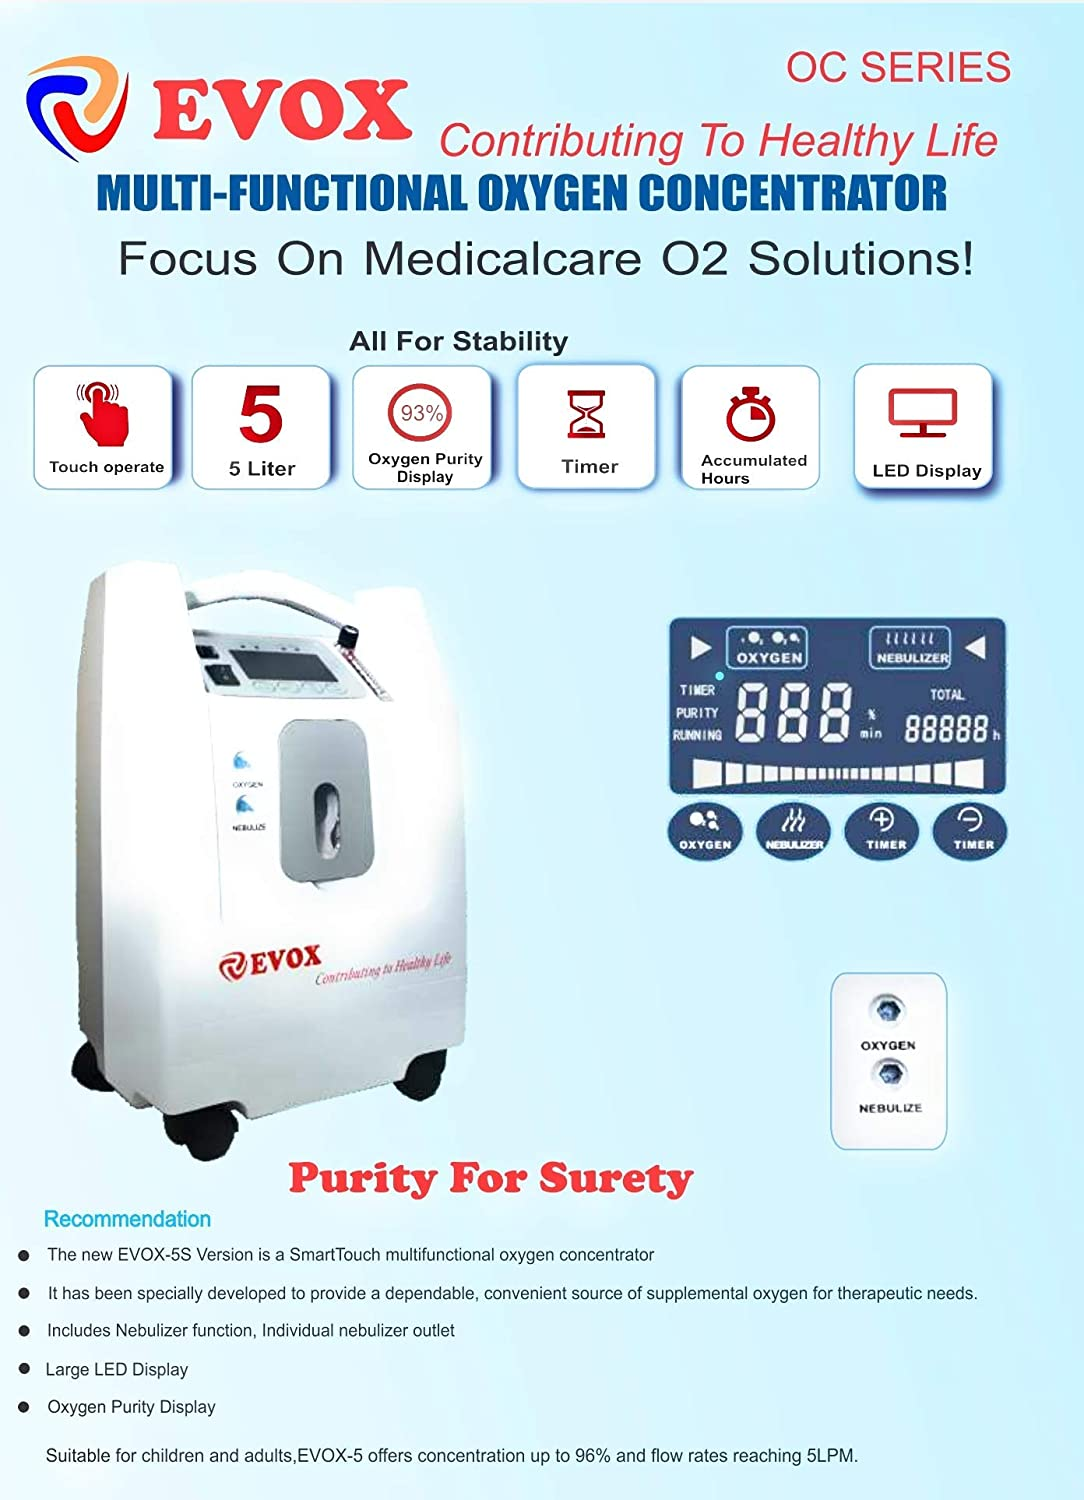 Evox oxygen concentrator review of features.